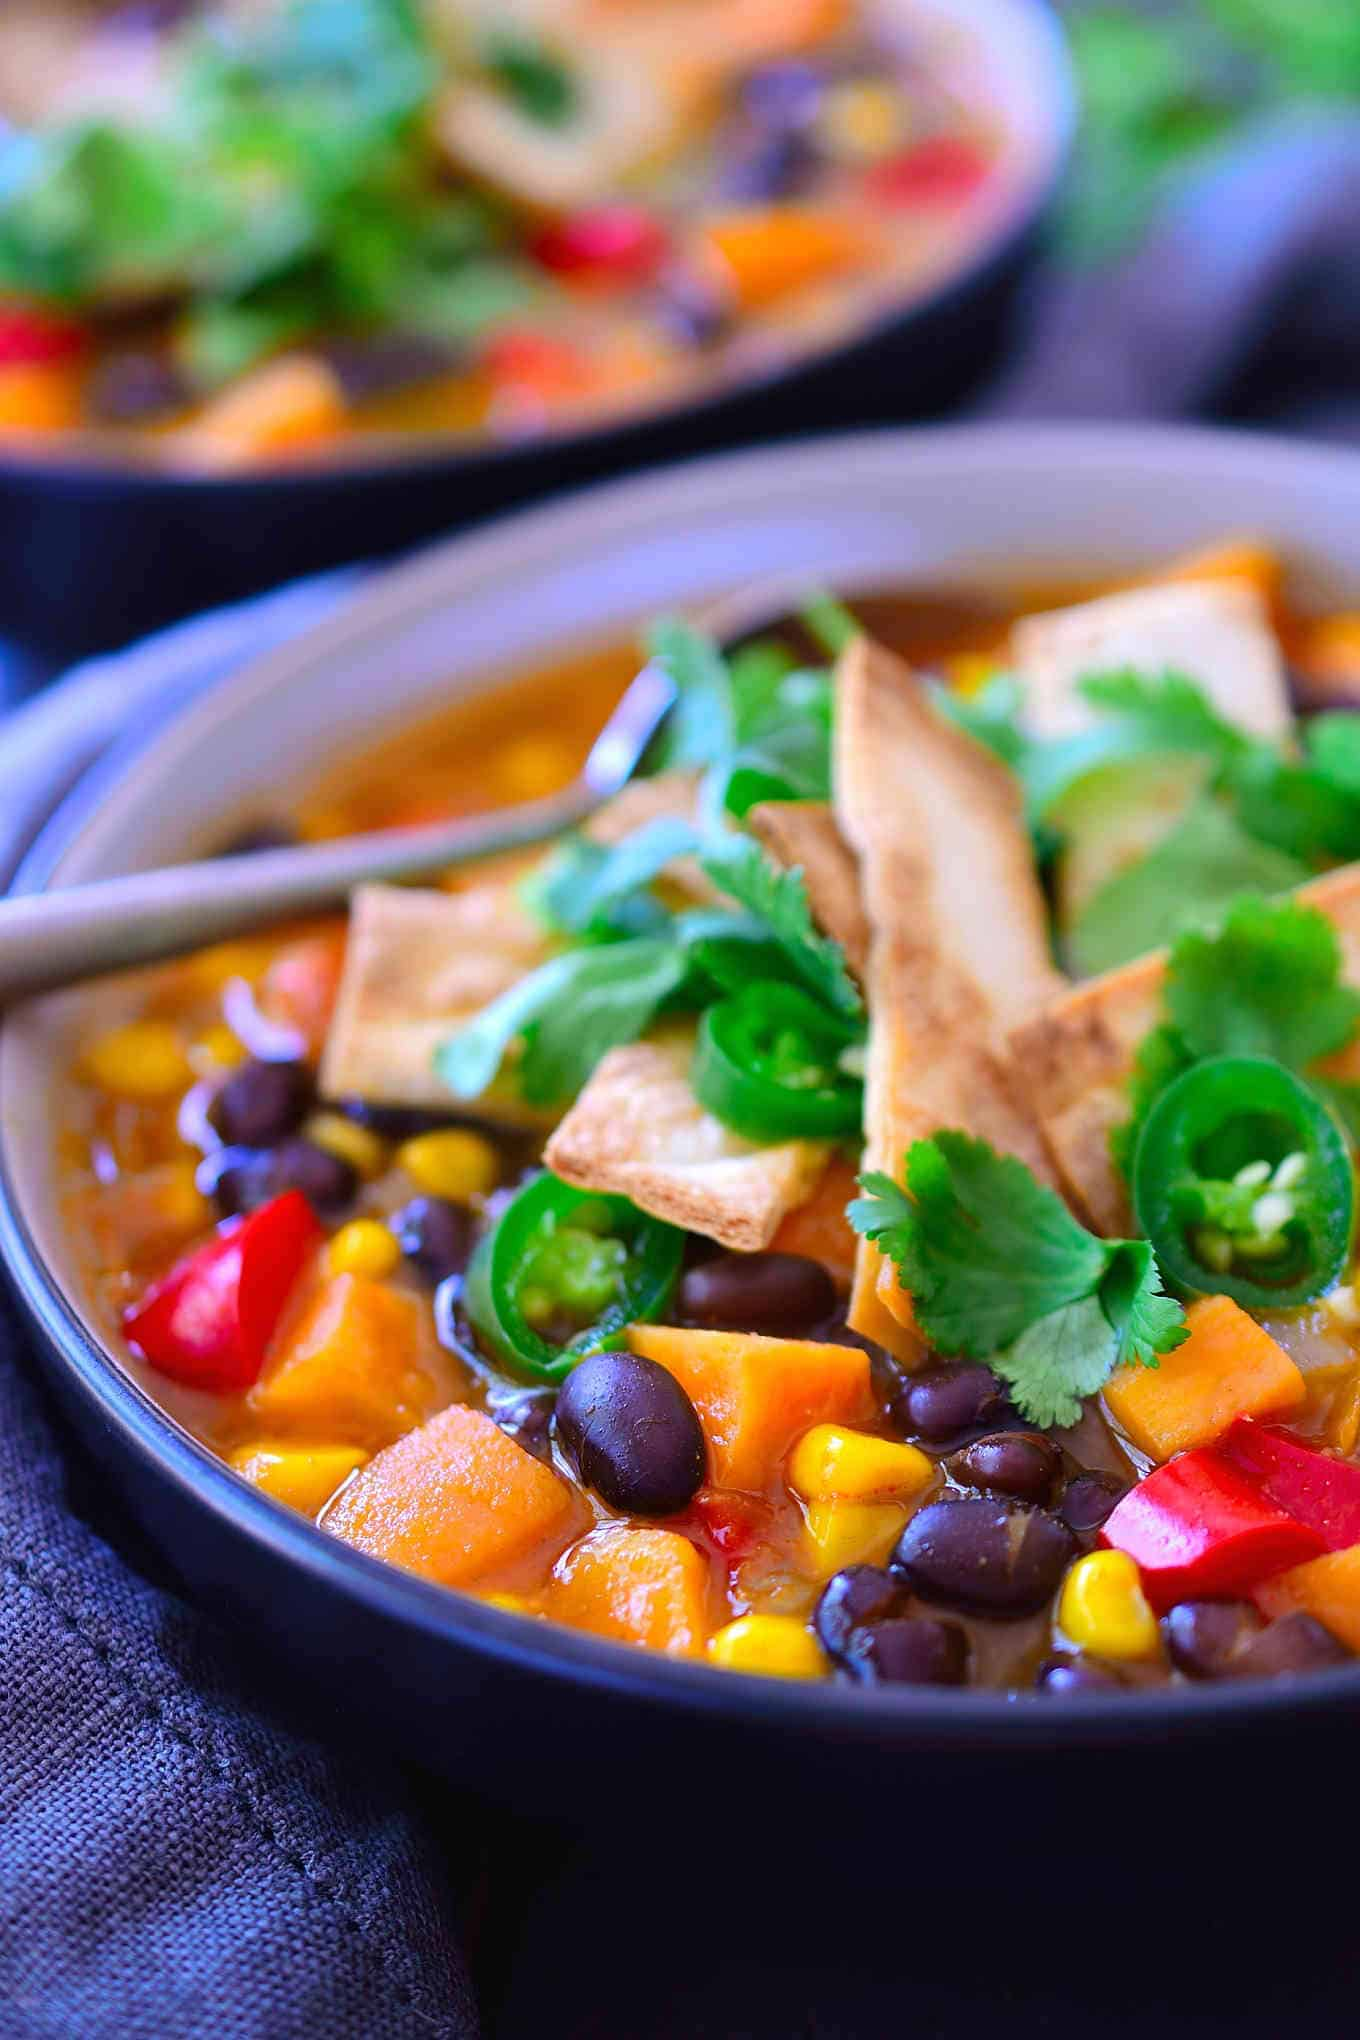 This vegetarian enchilada soup tastes just like ... you guessed it: enchiladas, but in soup form. Not only is it super tasty, it's much quicker and easier than traditional enchiladas as it can be ready in just 20 minutes! It's a super lazy, freezer friendly and filling meal that costs less than two dollars a serving.